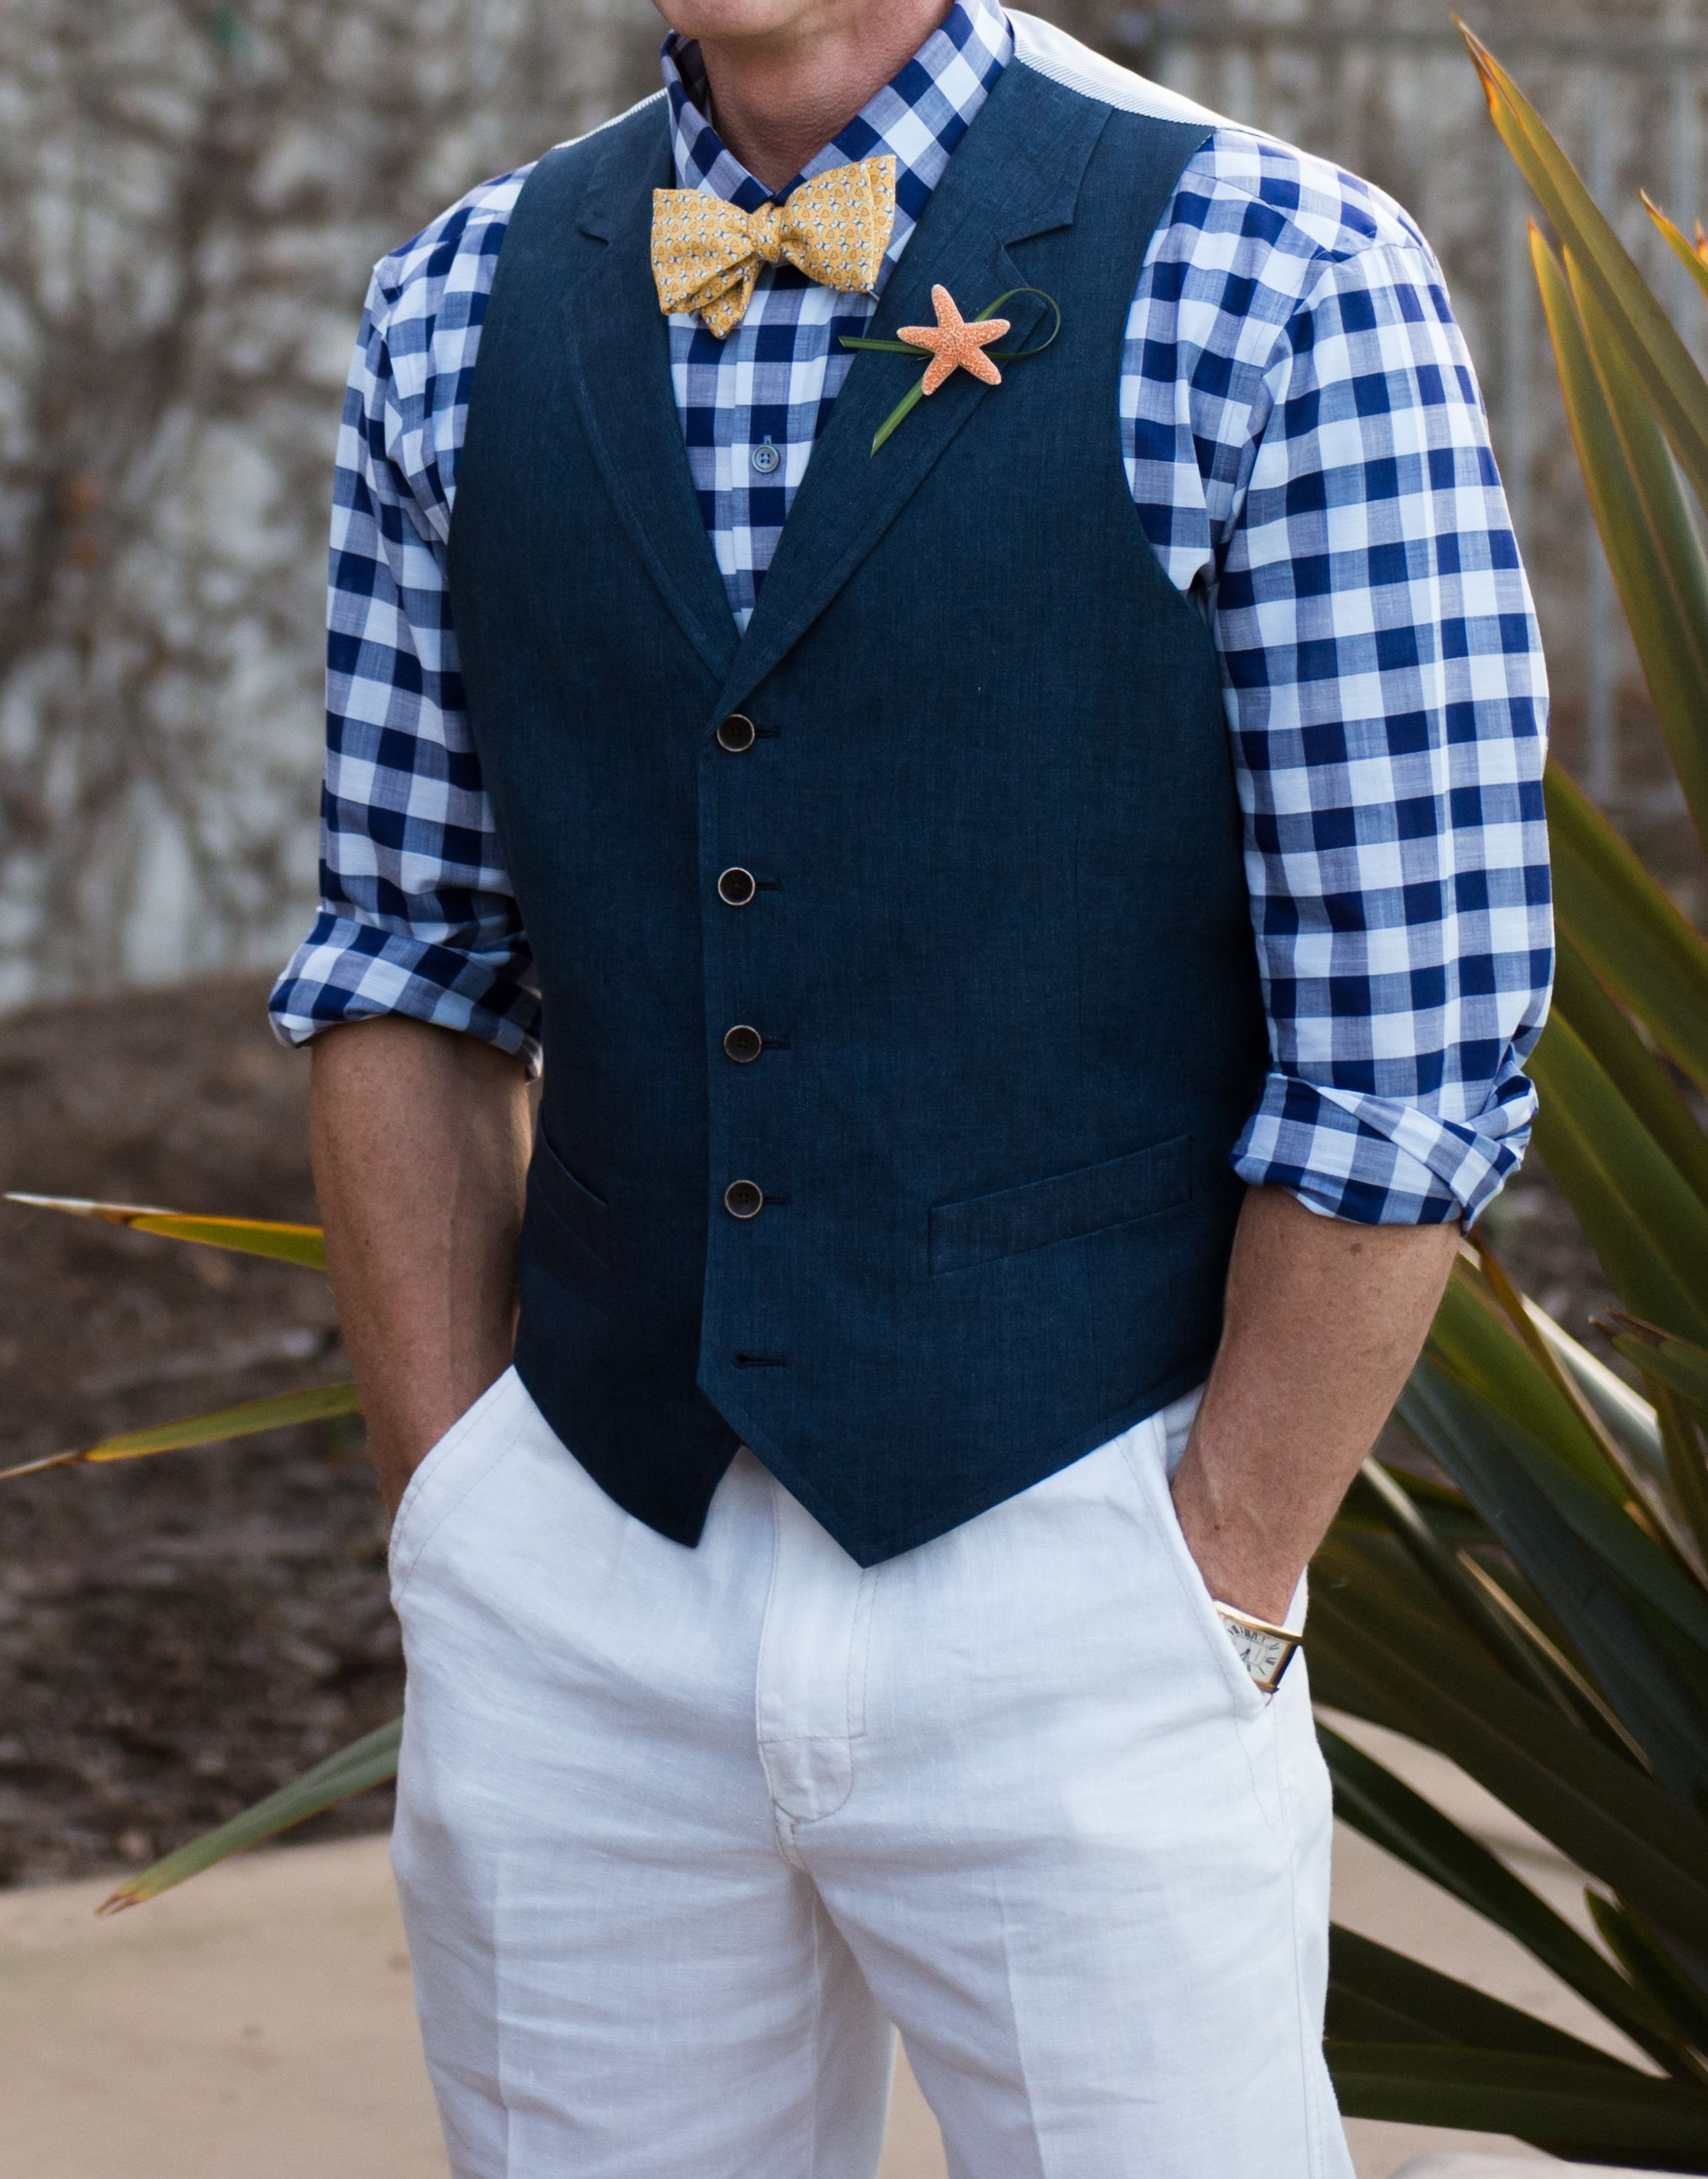 Beachy Gatsby wedding outfit with bowtie, vest, rolled up